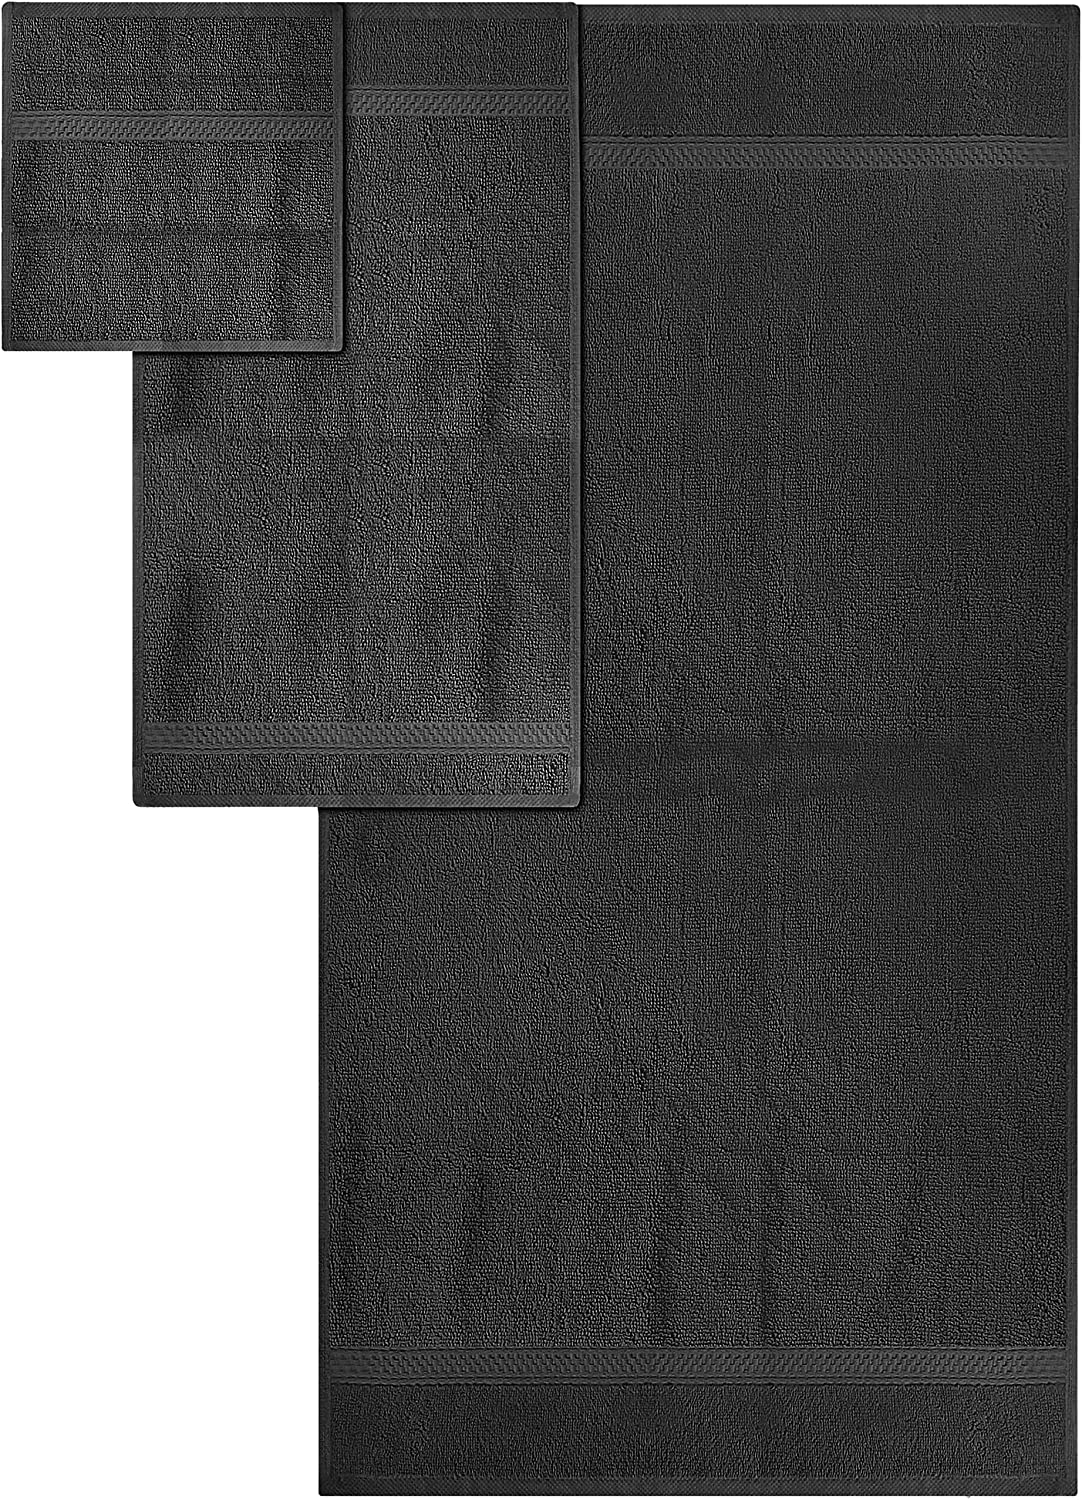 Utopia Towels Towel Set, 2 Bath Towels, 2 Hand Towels, and 4 Washcloths, 600 GSM Ring Spun Cotton Highly Absorbent Towels for Bathroom, Shower Towel, (Pack of 8): Home & Kitchen